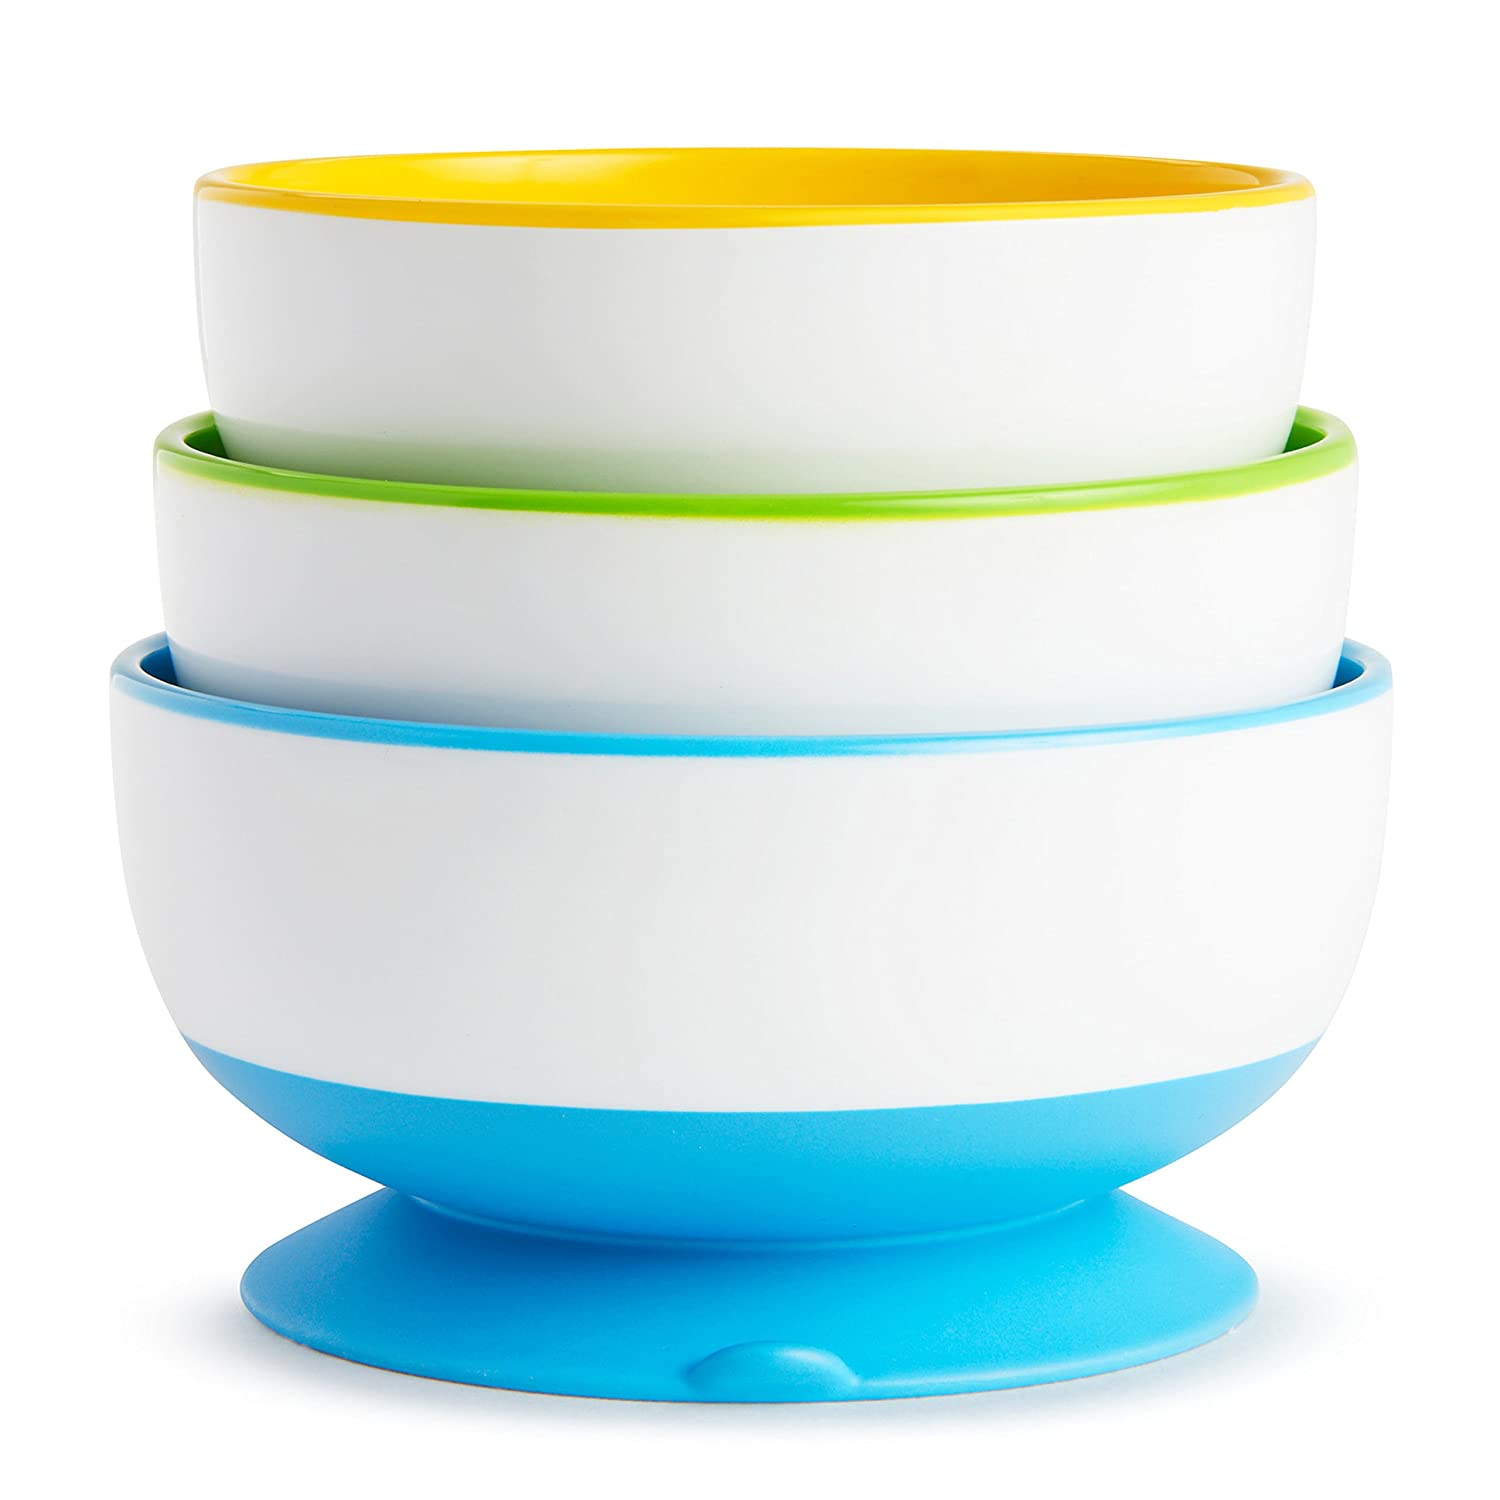 9 Best Baby Bowls and Plates Reviews in 2021 Parent Should Choose 10